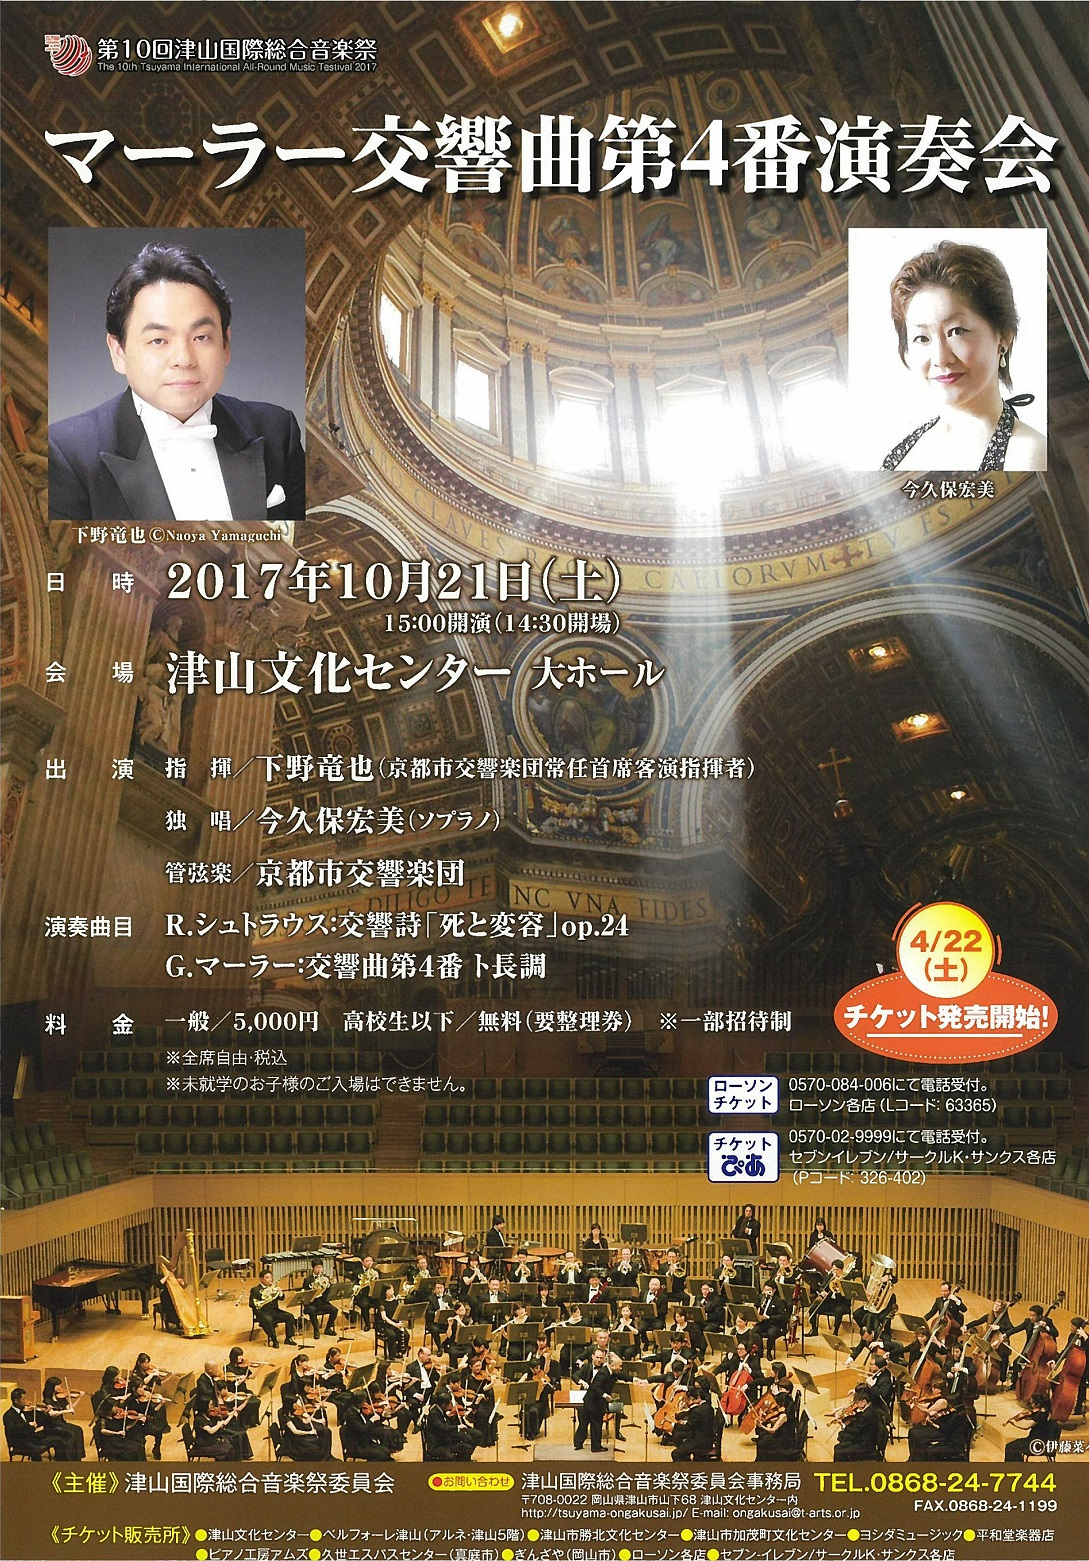 This week's concert (16 October – 22 October, 2017)